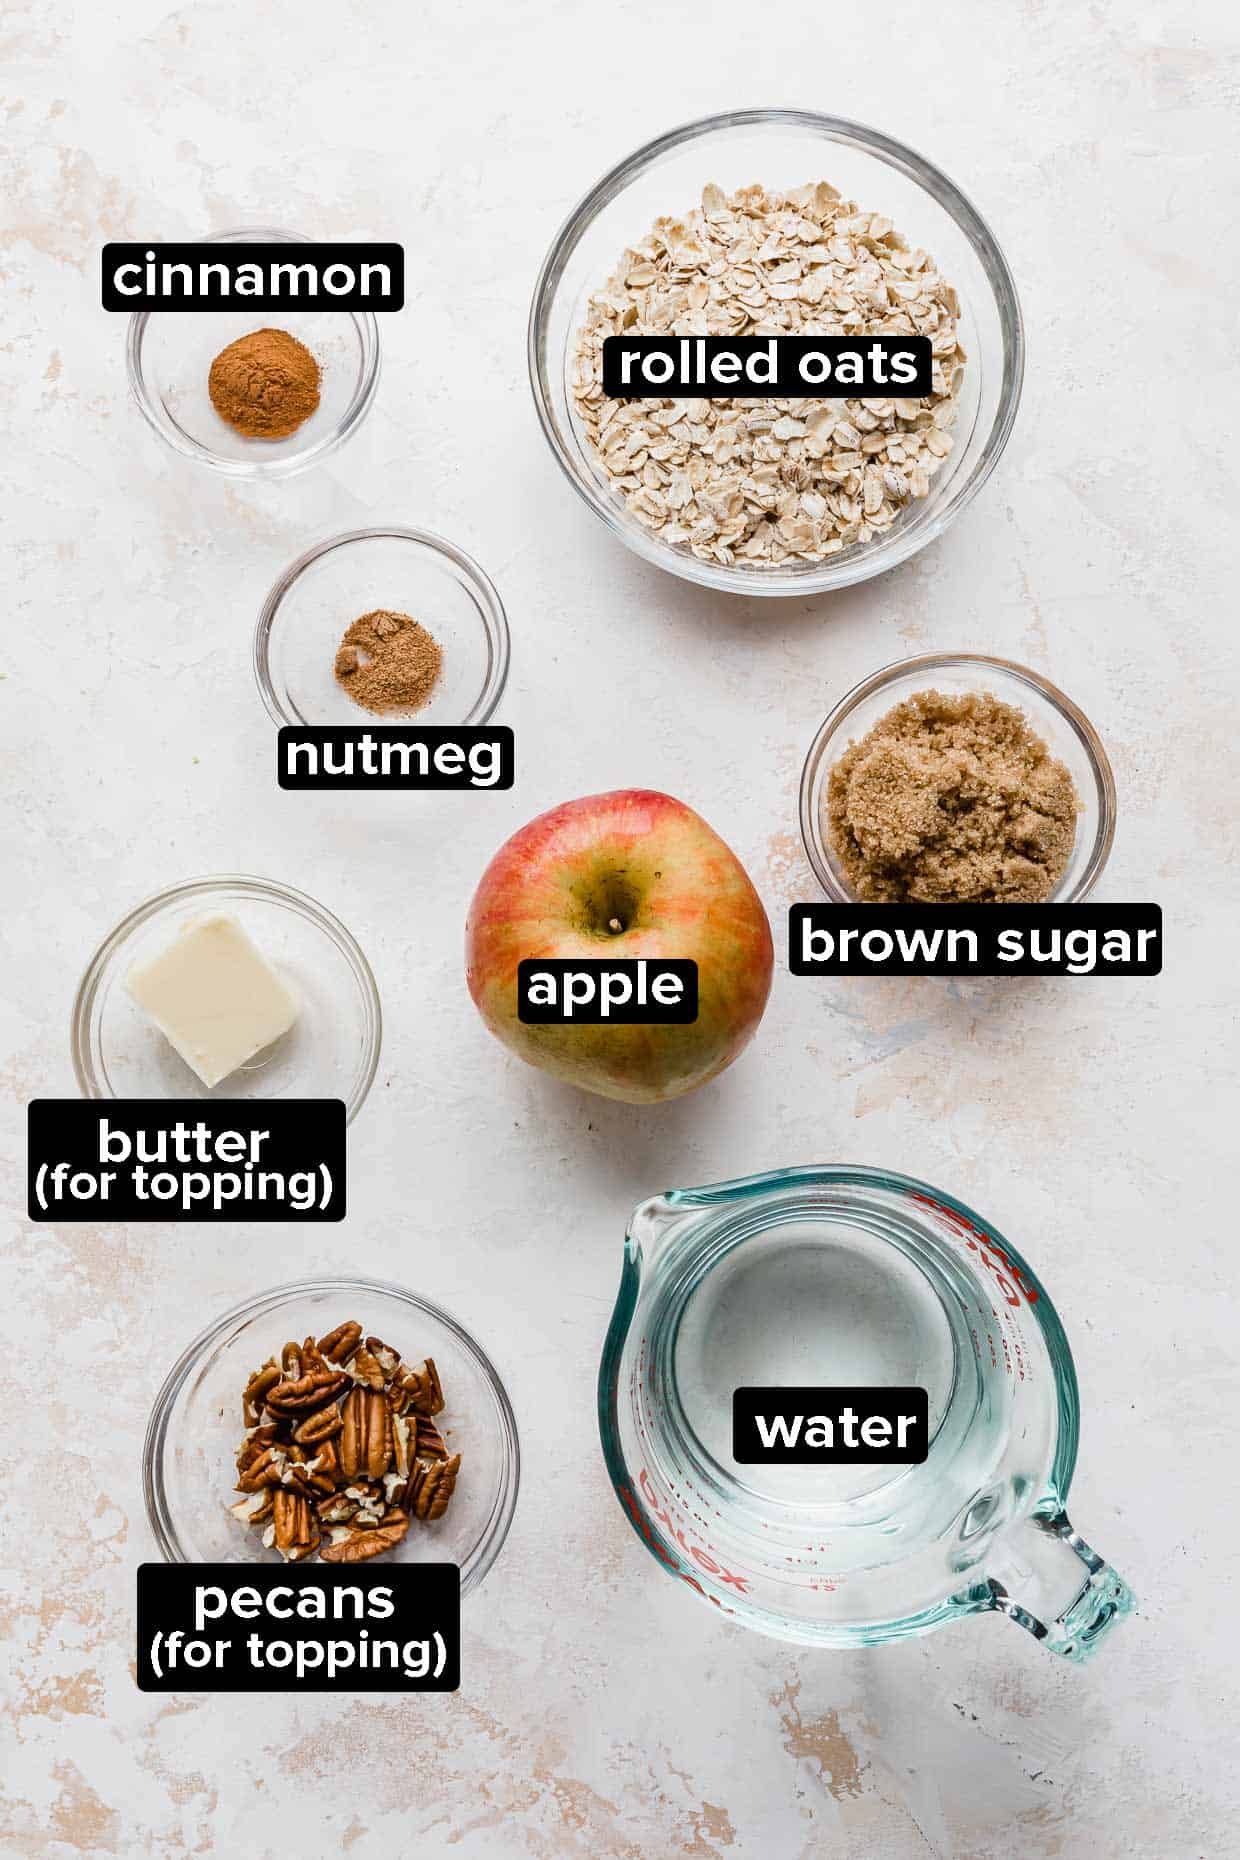 Ingredients used to make apple cinnamon oatmeal on a textured white background.